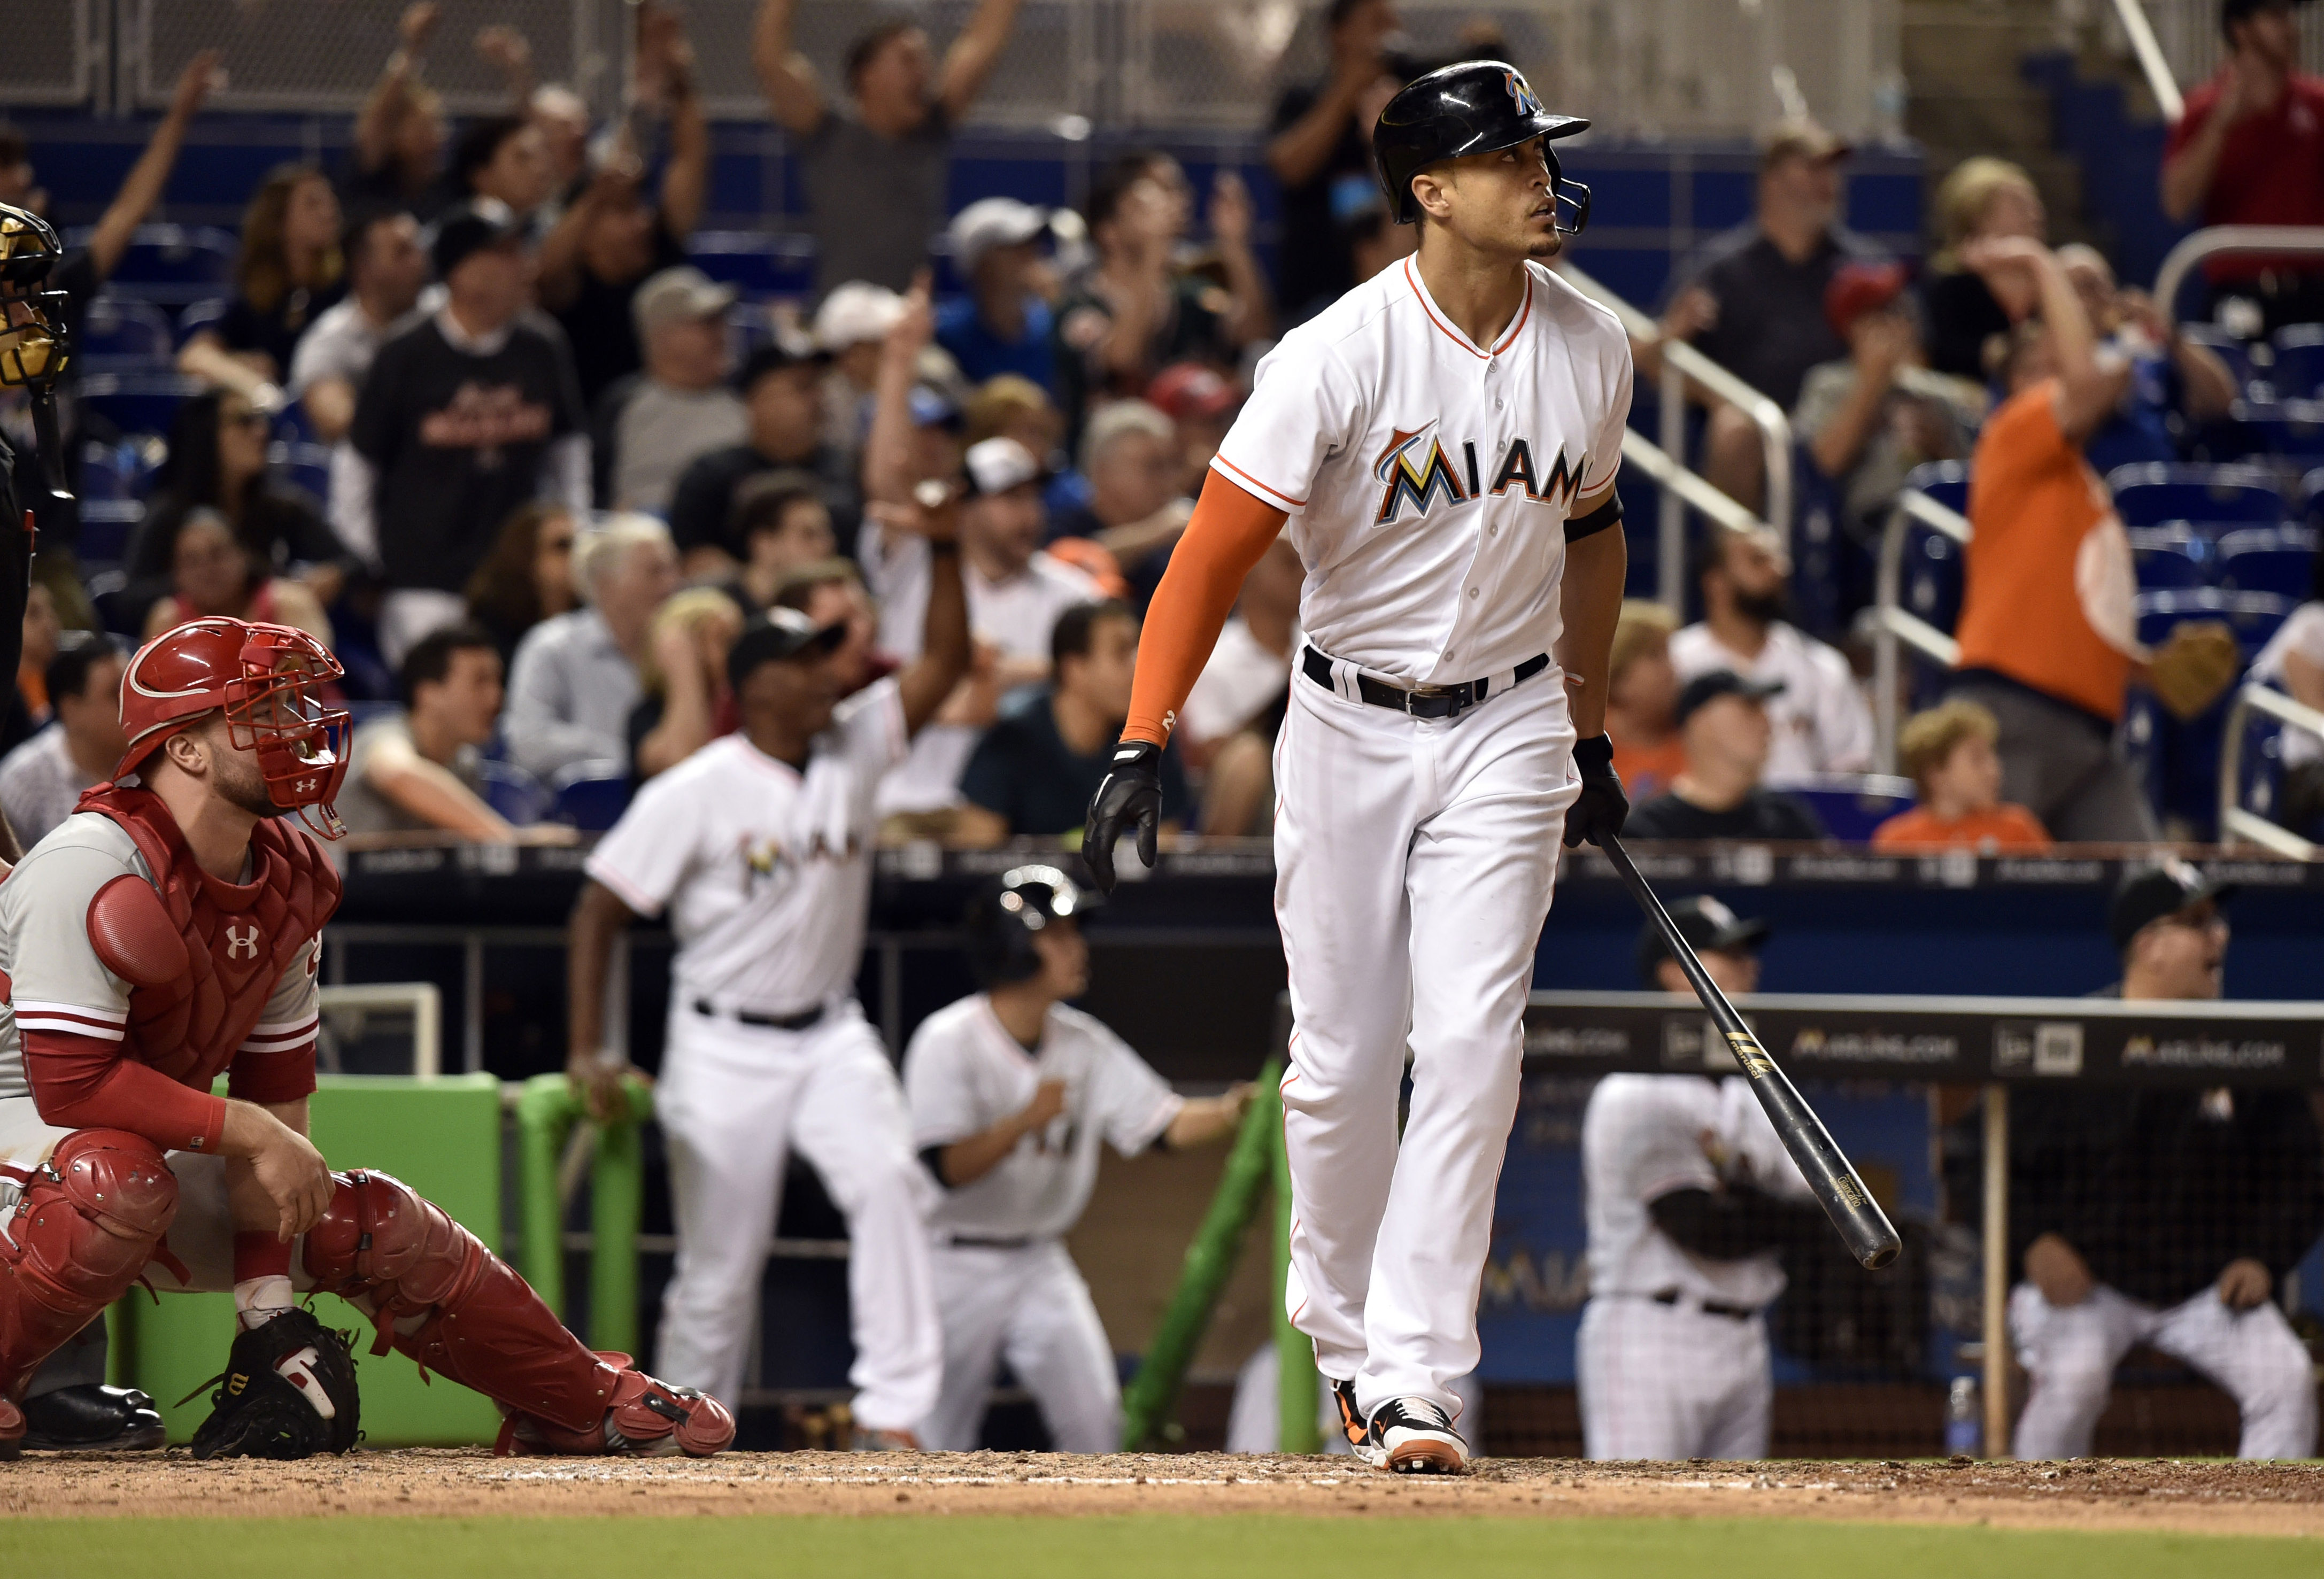 9284363-mlb-philadelphia-phillies-at-miami-marlins